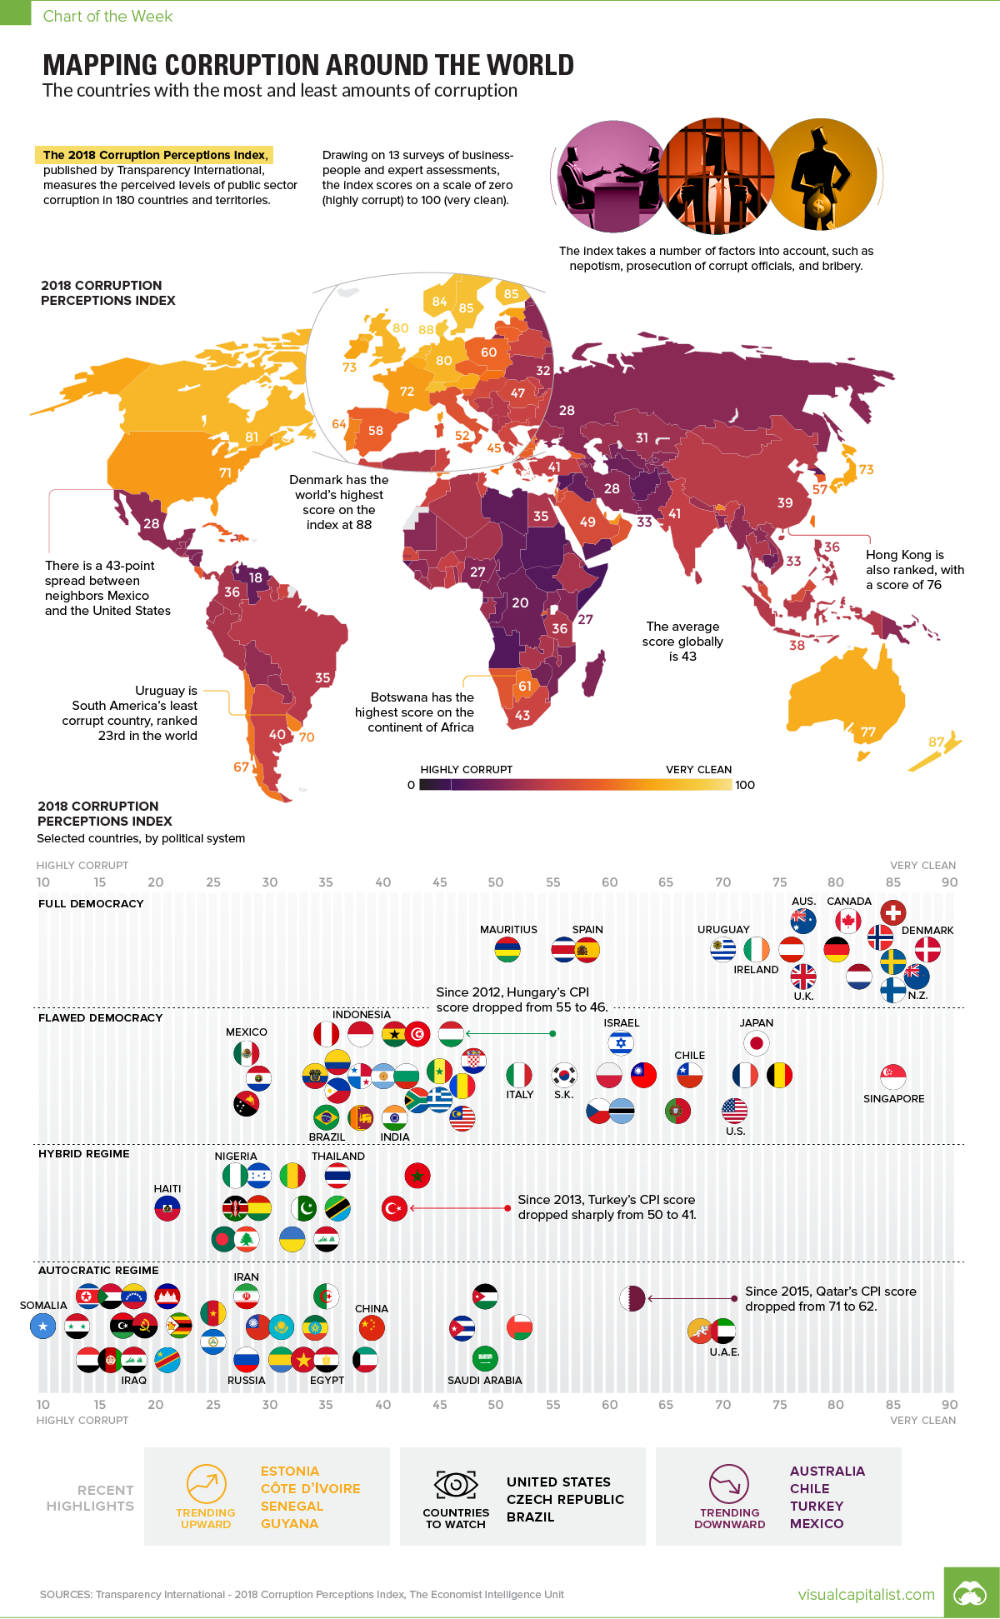 Infographic Visualizing Corruption Around the World in